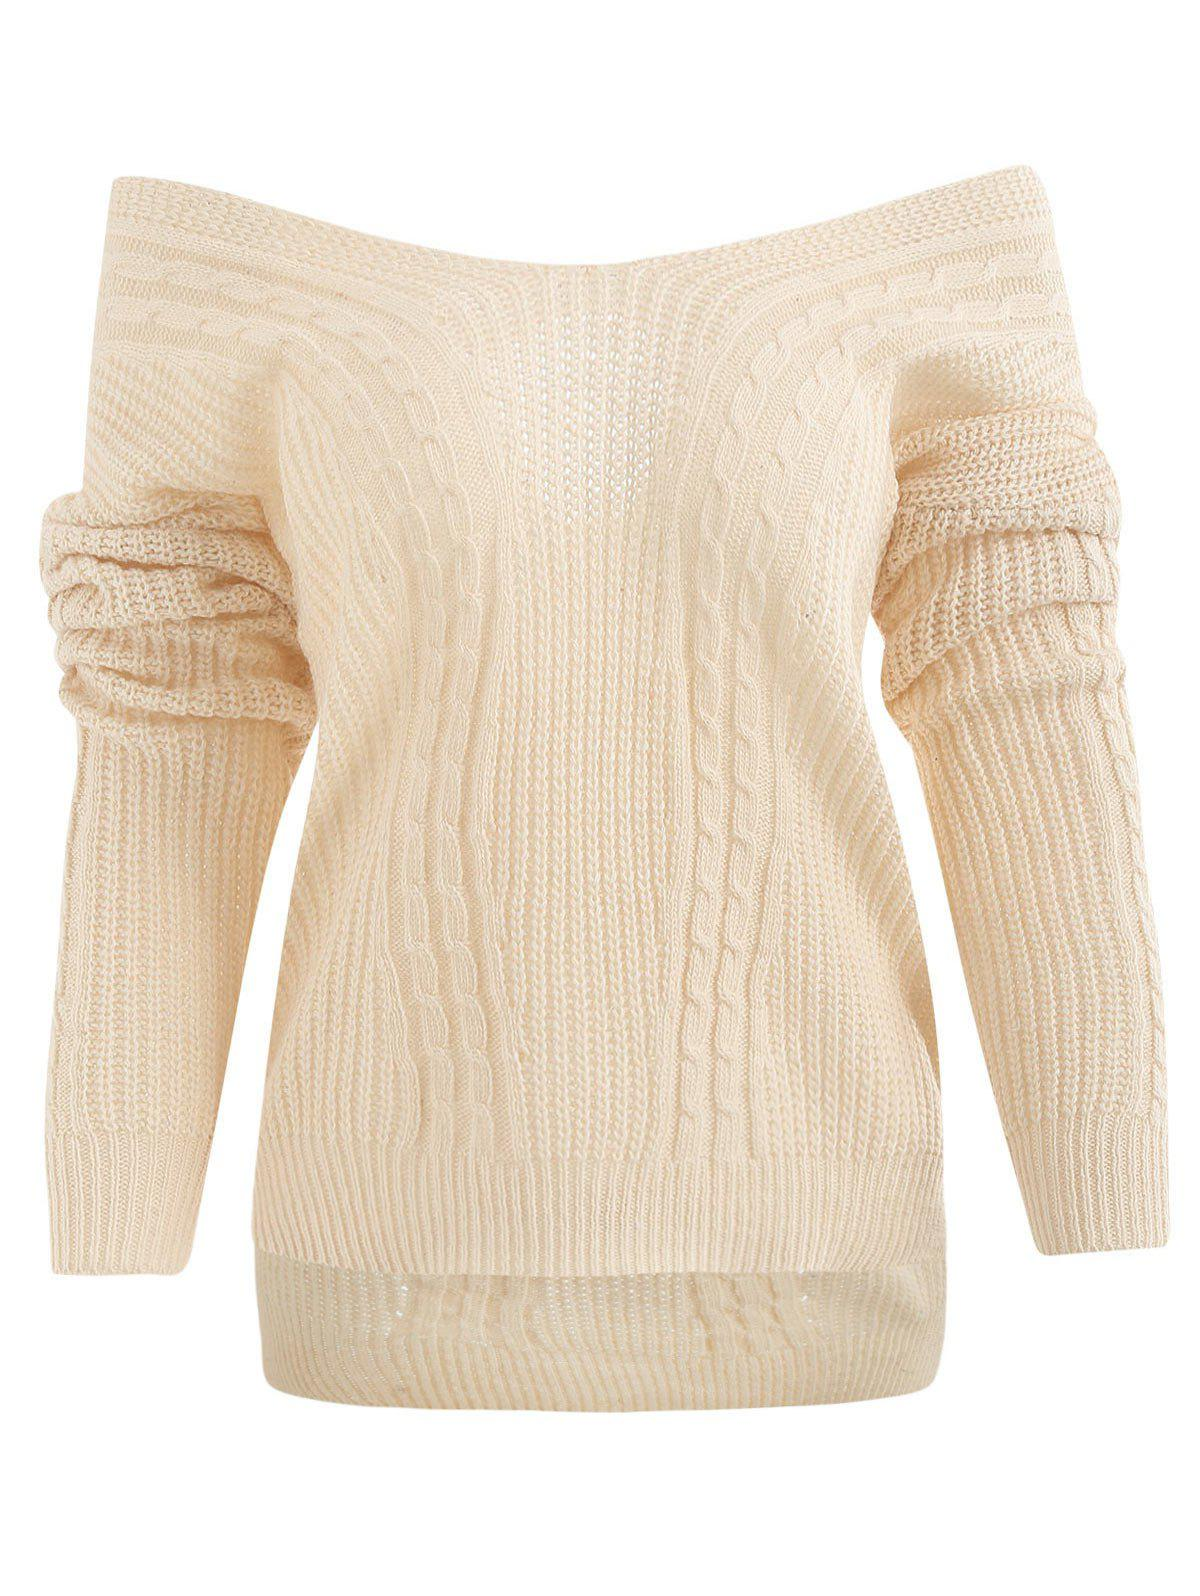 ff1cbe5f89 41% OFF   2019 Crisscross OFF Shoulder Cable Knit Sweater